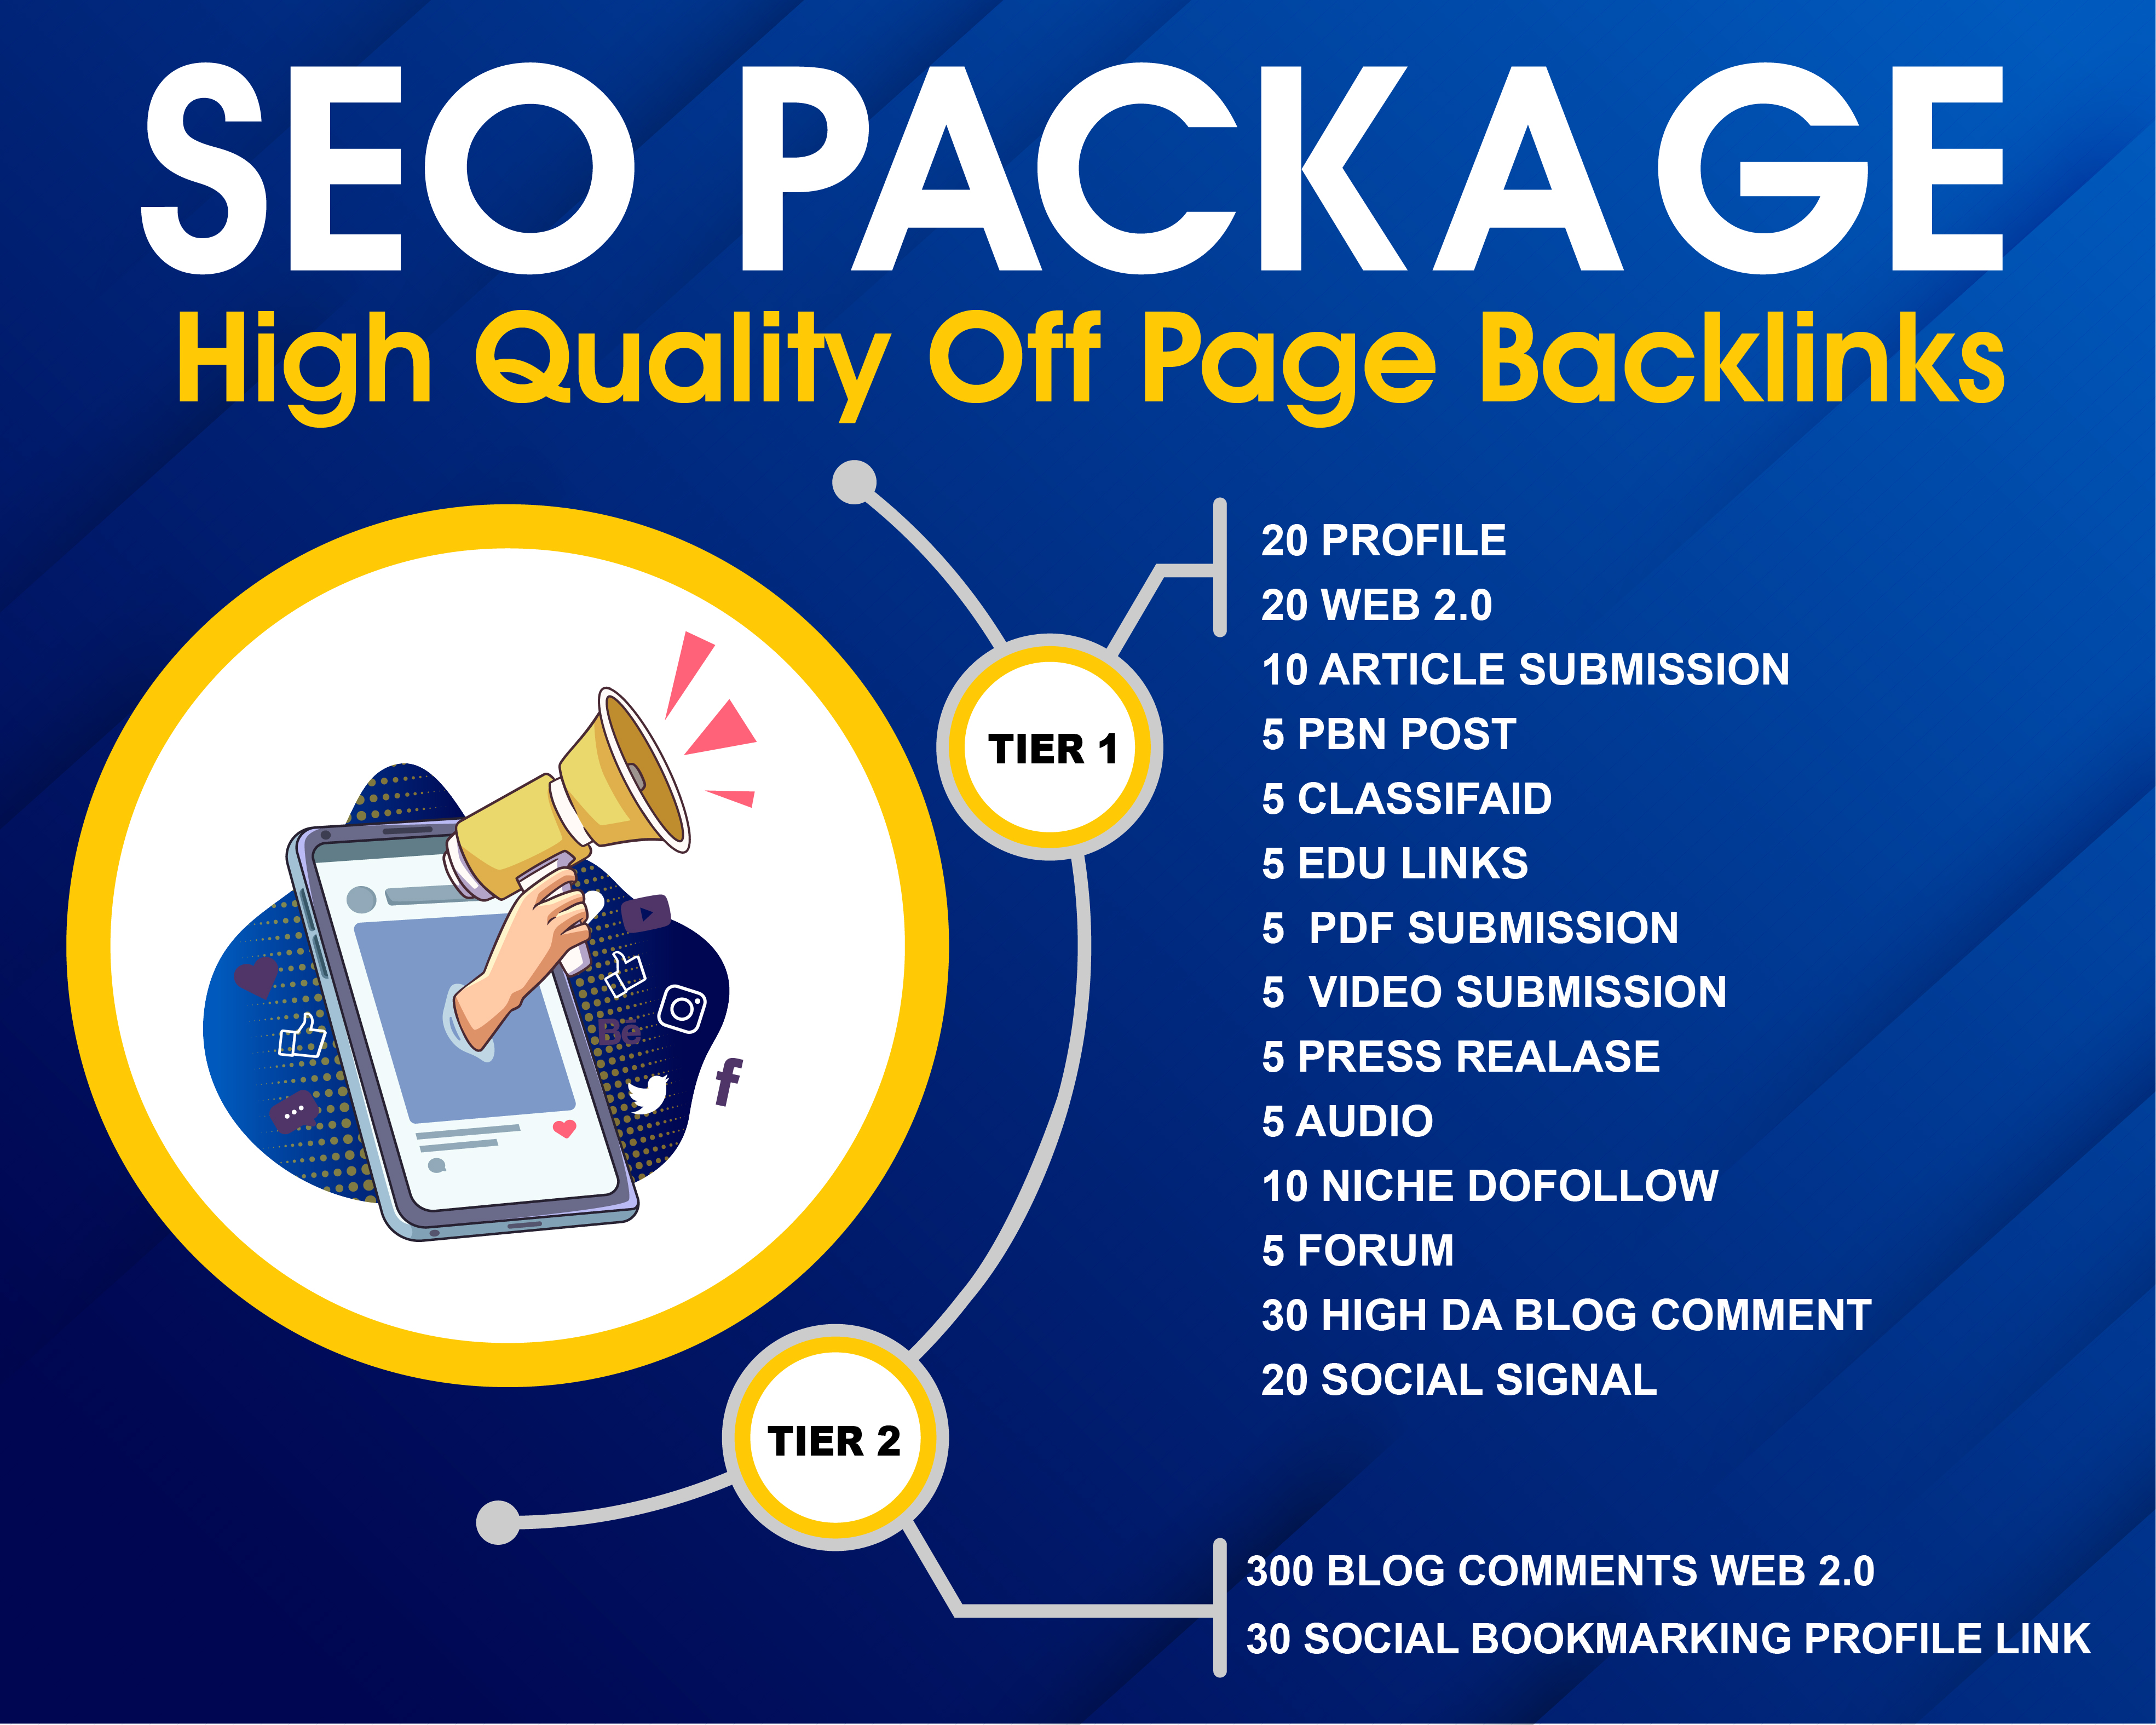 I Can Provide SEO Package High Quality Off Page Backlinks